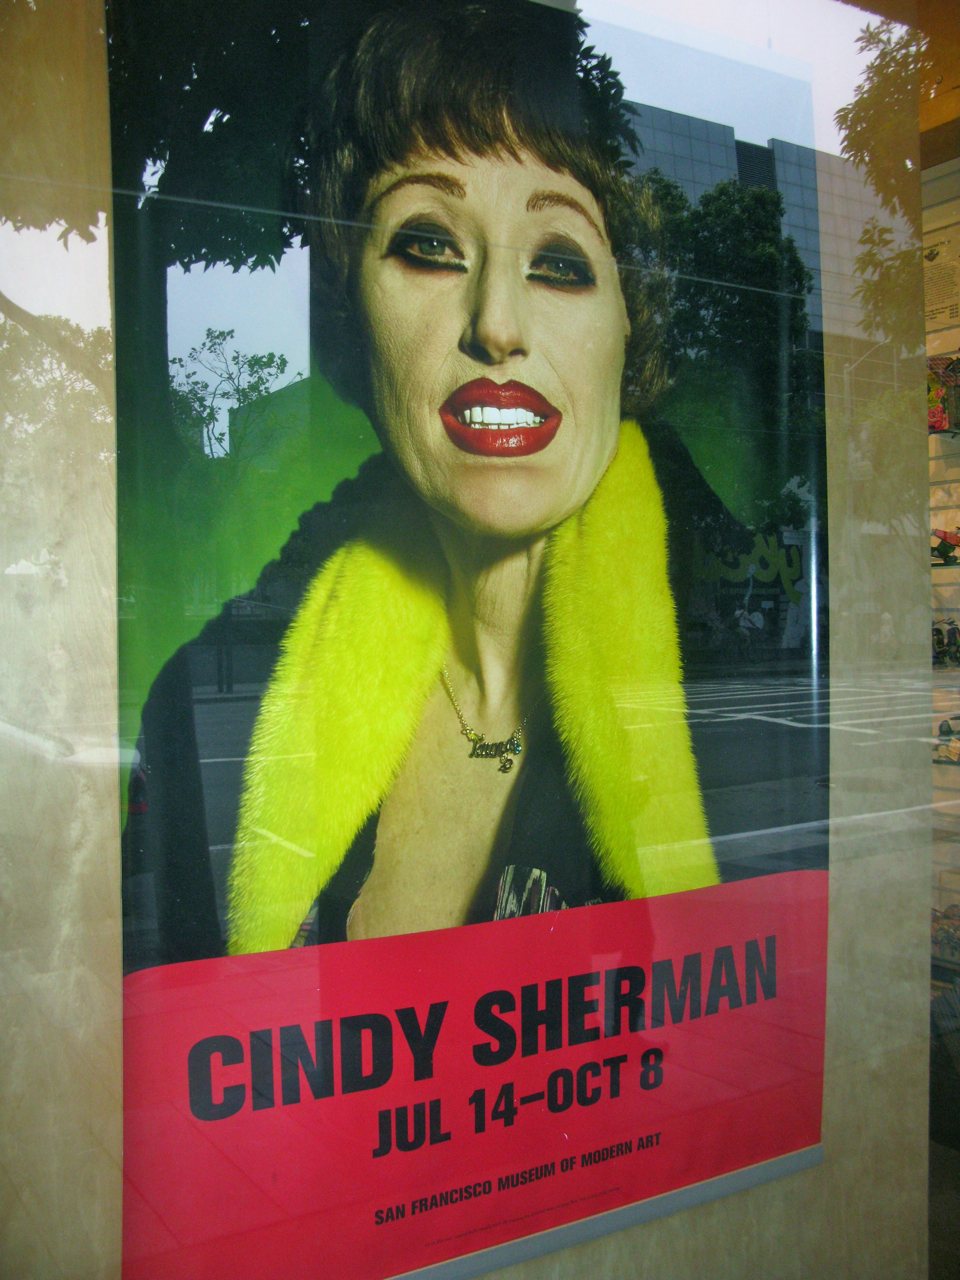 Poster of Cindy Sherman at San Francisco MoMA 2012. Photo by torbakhopper via Flickr.